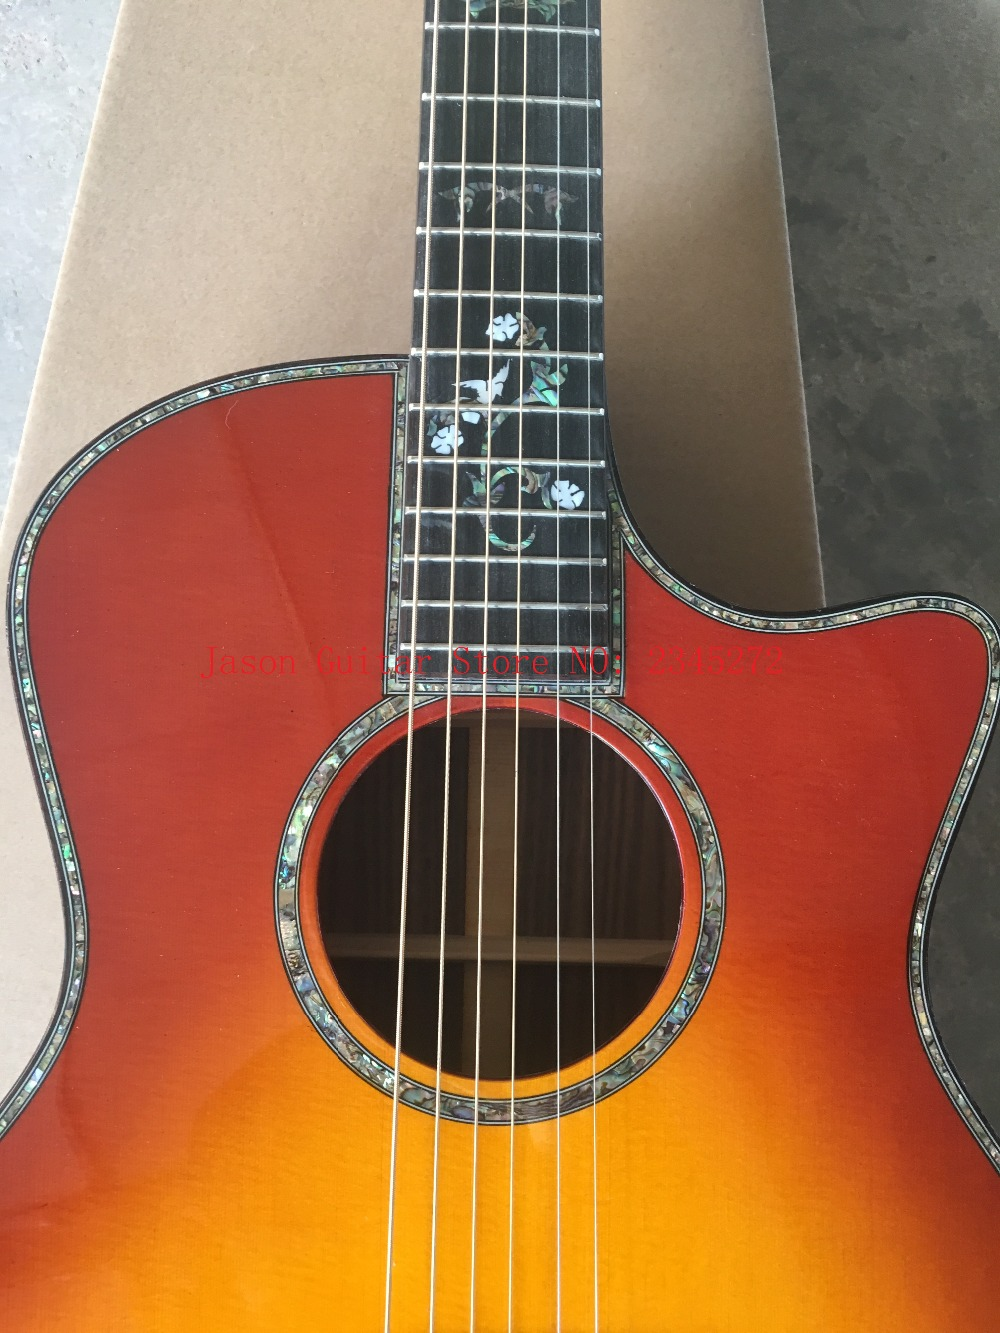 Custom 9 16 acoustic guitar,Solid spruce top,Ebony Fingerboard Guitar,Abalone inlays OEM acoustic Guitar,Free shipping